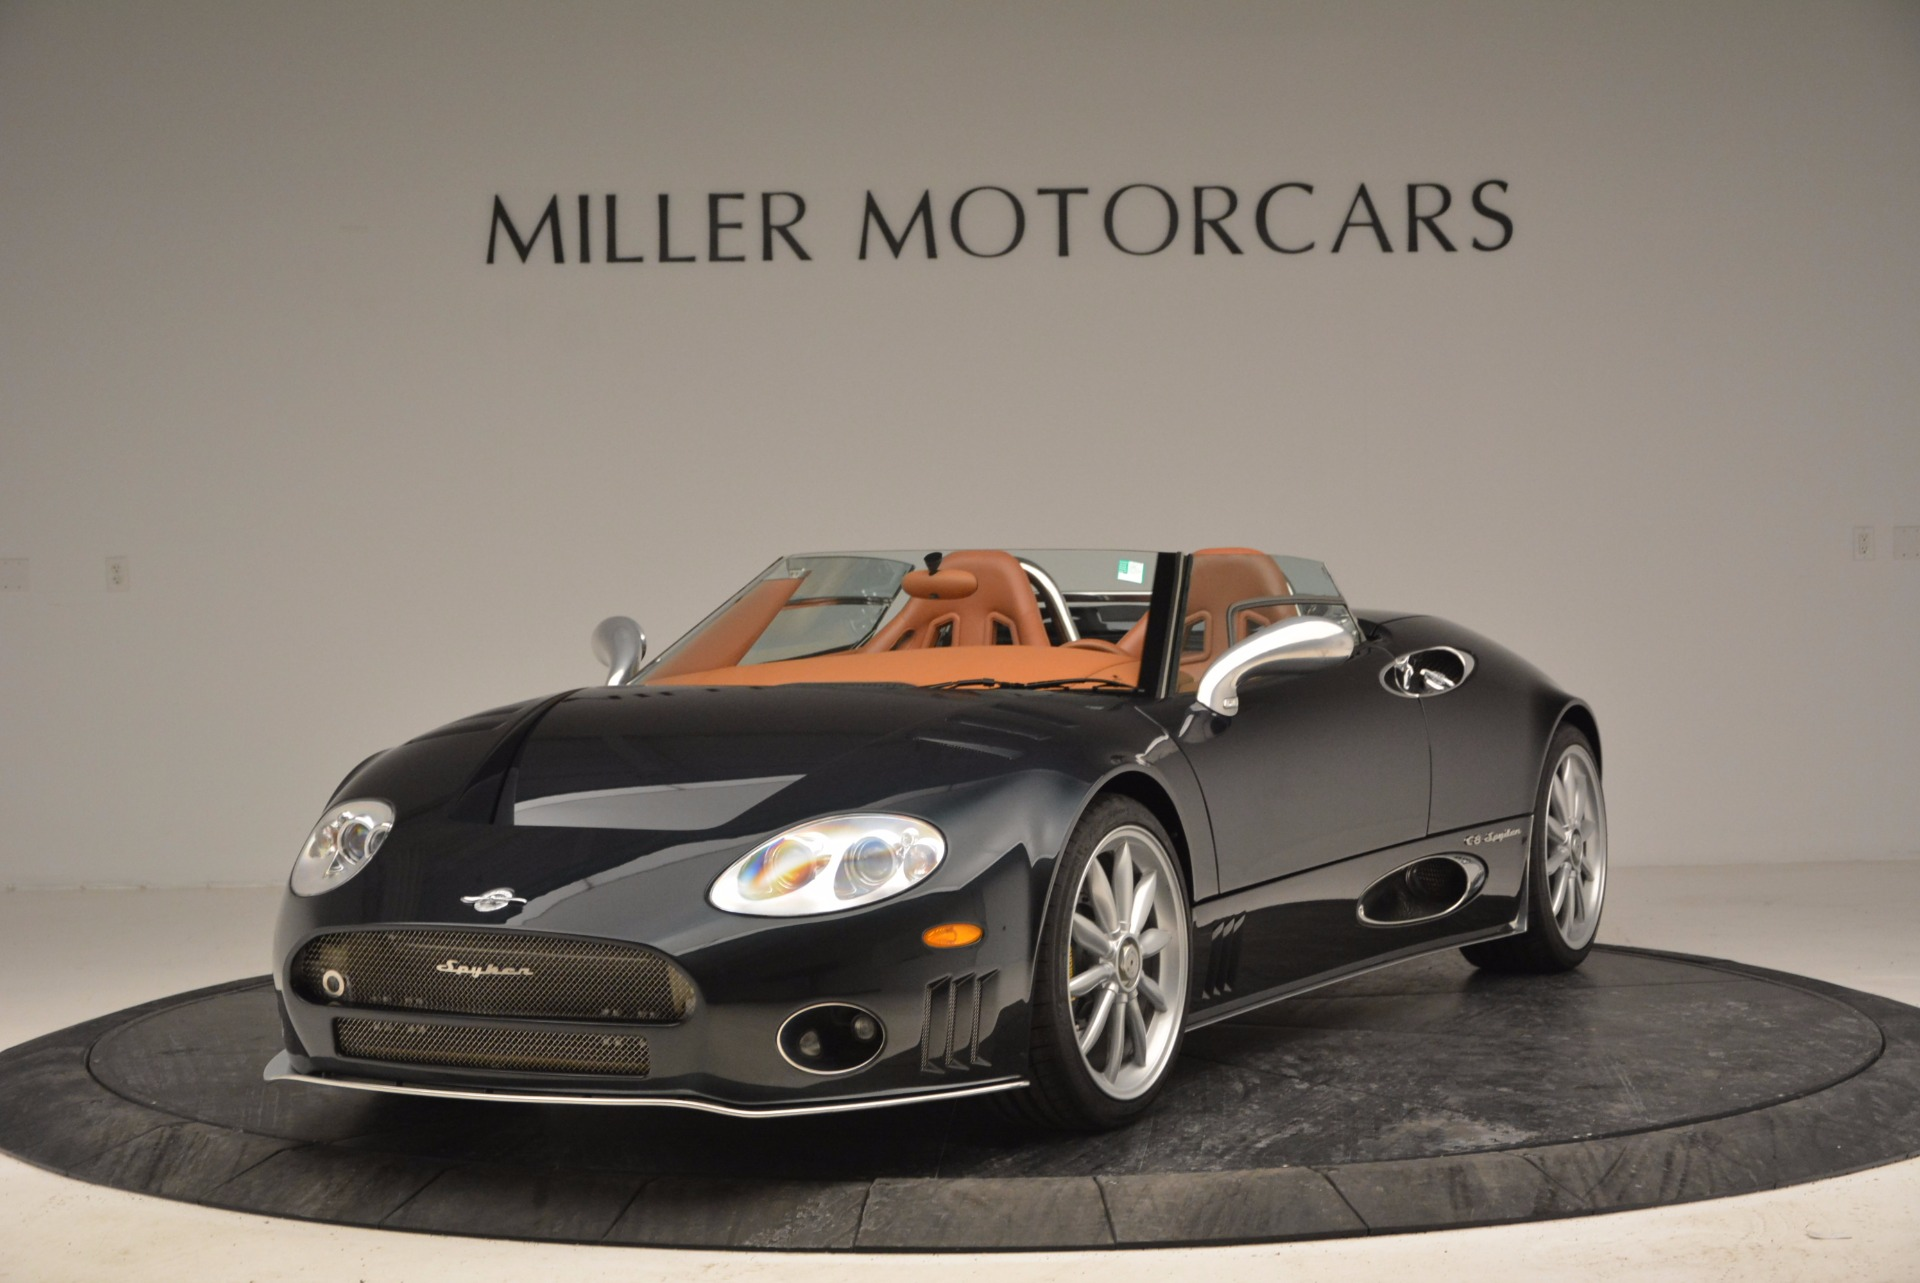 Used 2006 Spyker C8 Spyder for sale Sold at Pagani of Greenwich in Greenwich CT 06830 1